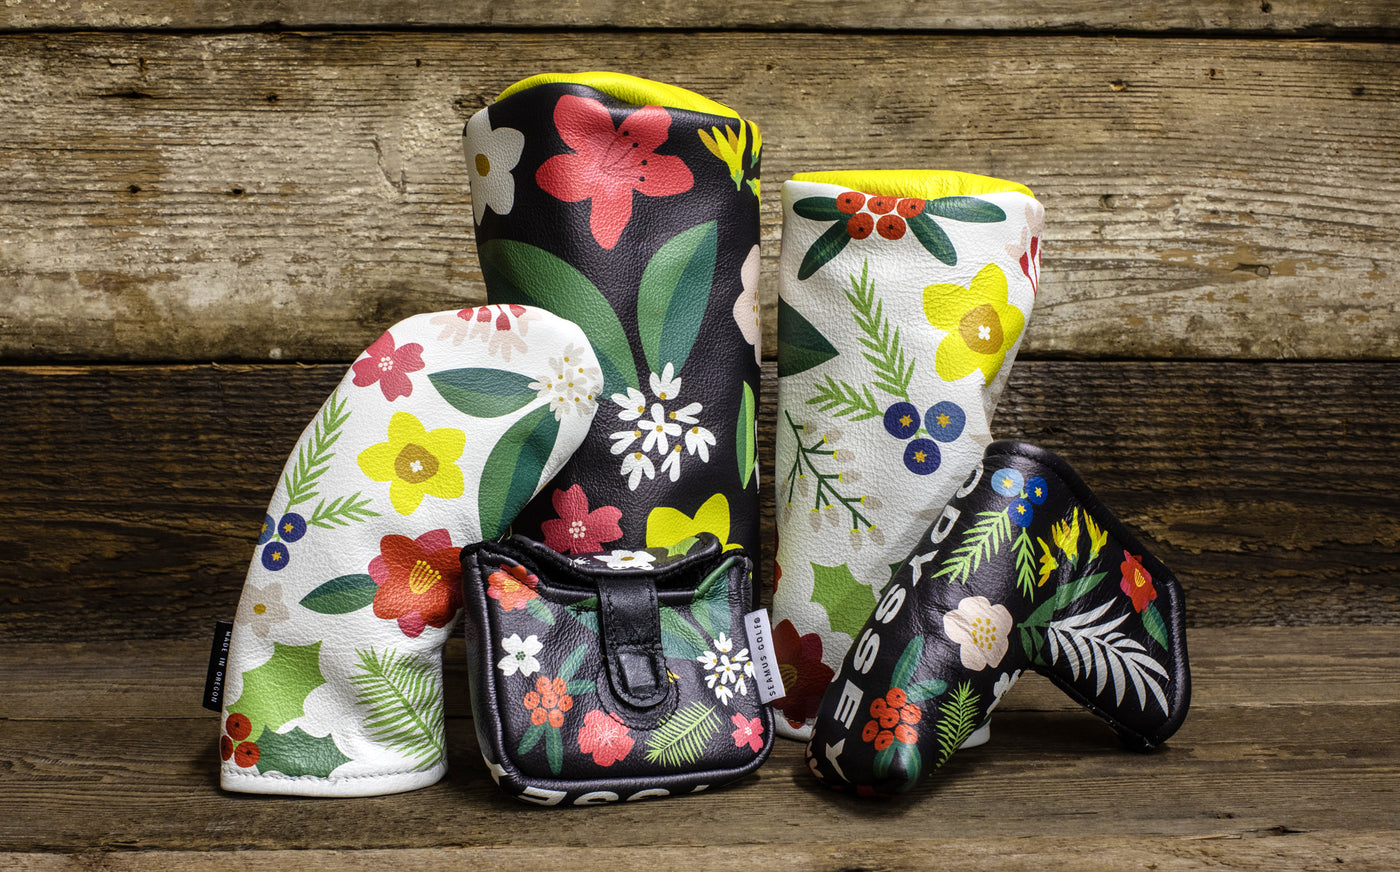 headcovers masters golf seamus callaway makers shoe collaboration floral equipment golfalot roundup